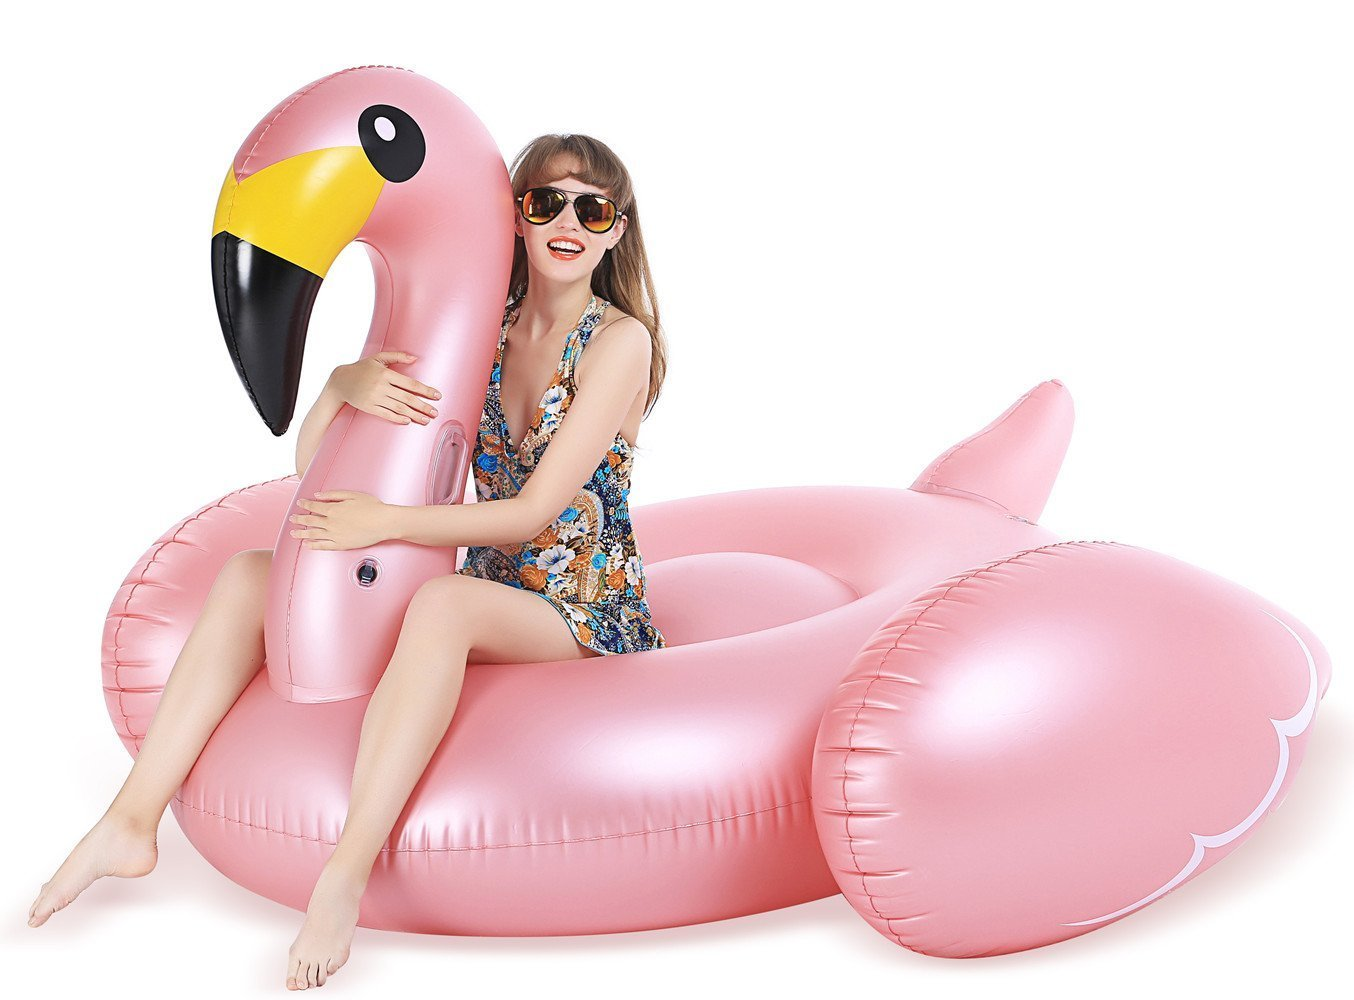 Jasonwell Giant Inflatable Flamingo Pool Float with Fast Valves Summer Beach Swimming Pool Party Lounge Raft Decorations Toys for Adults Kids XXXX-Large by Jasonwell